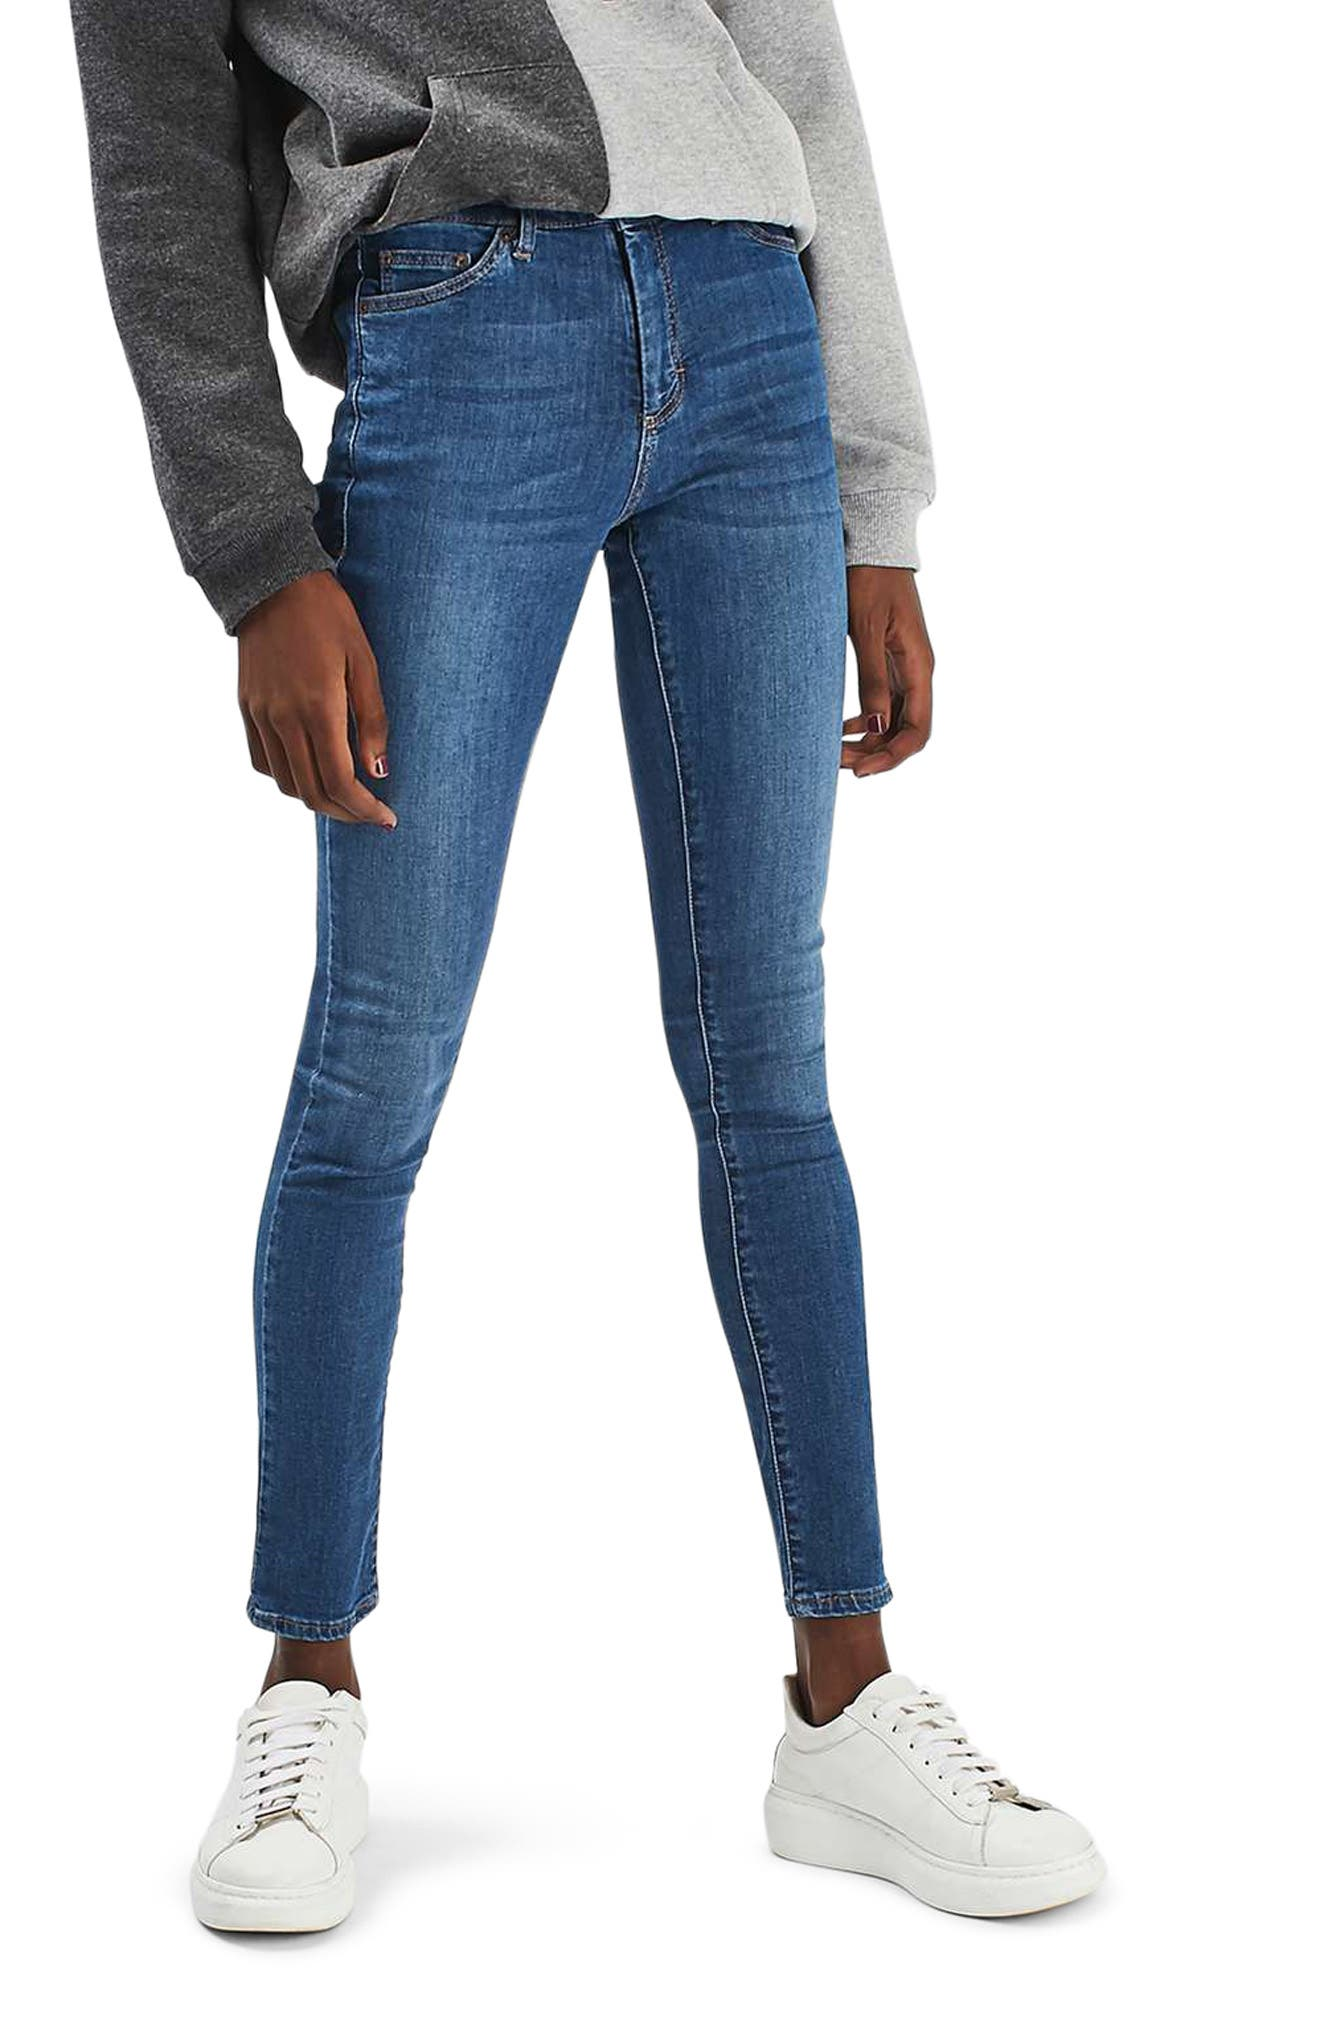 Leigh Skinny Jeans,                         Main,                         color, Mid Denim